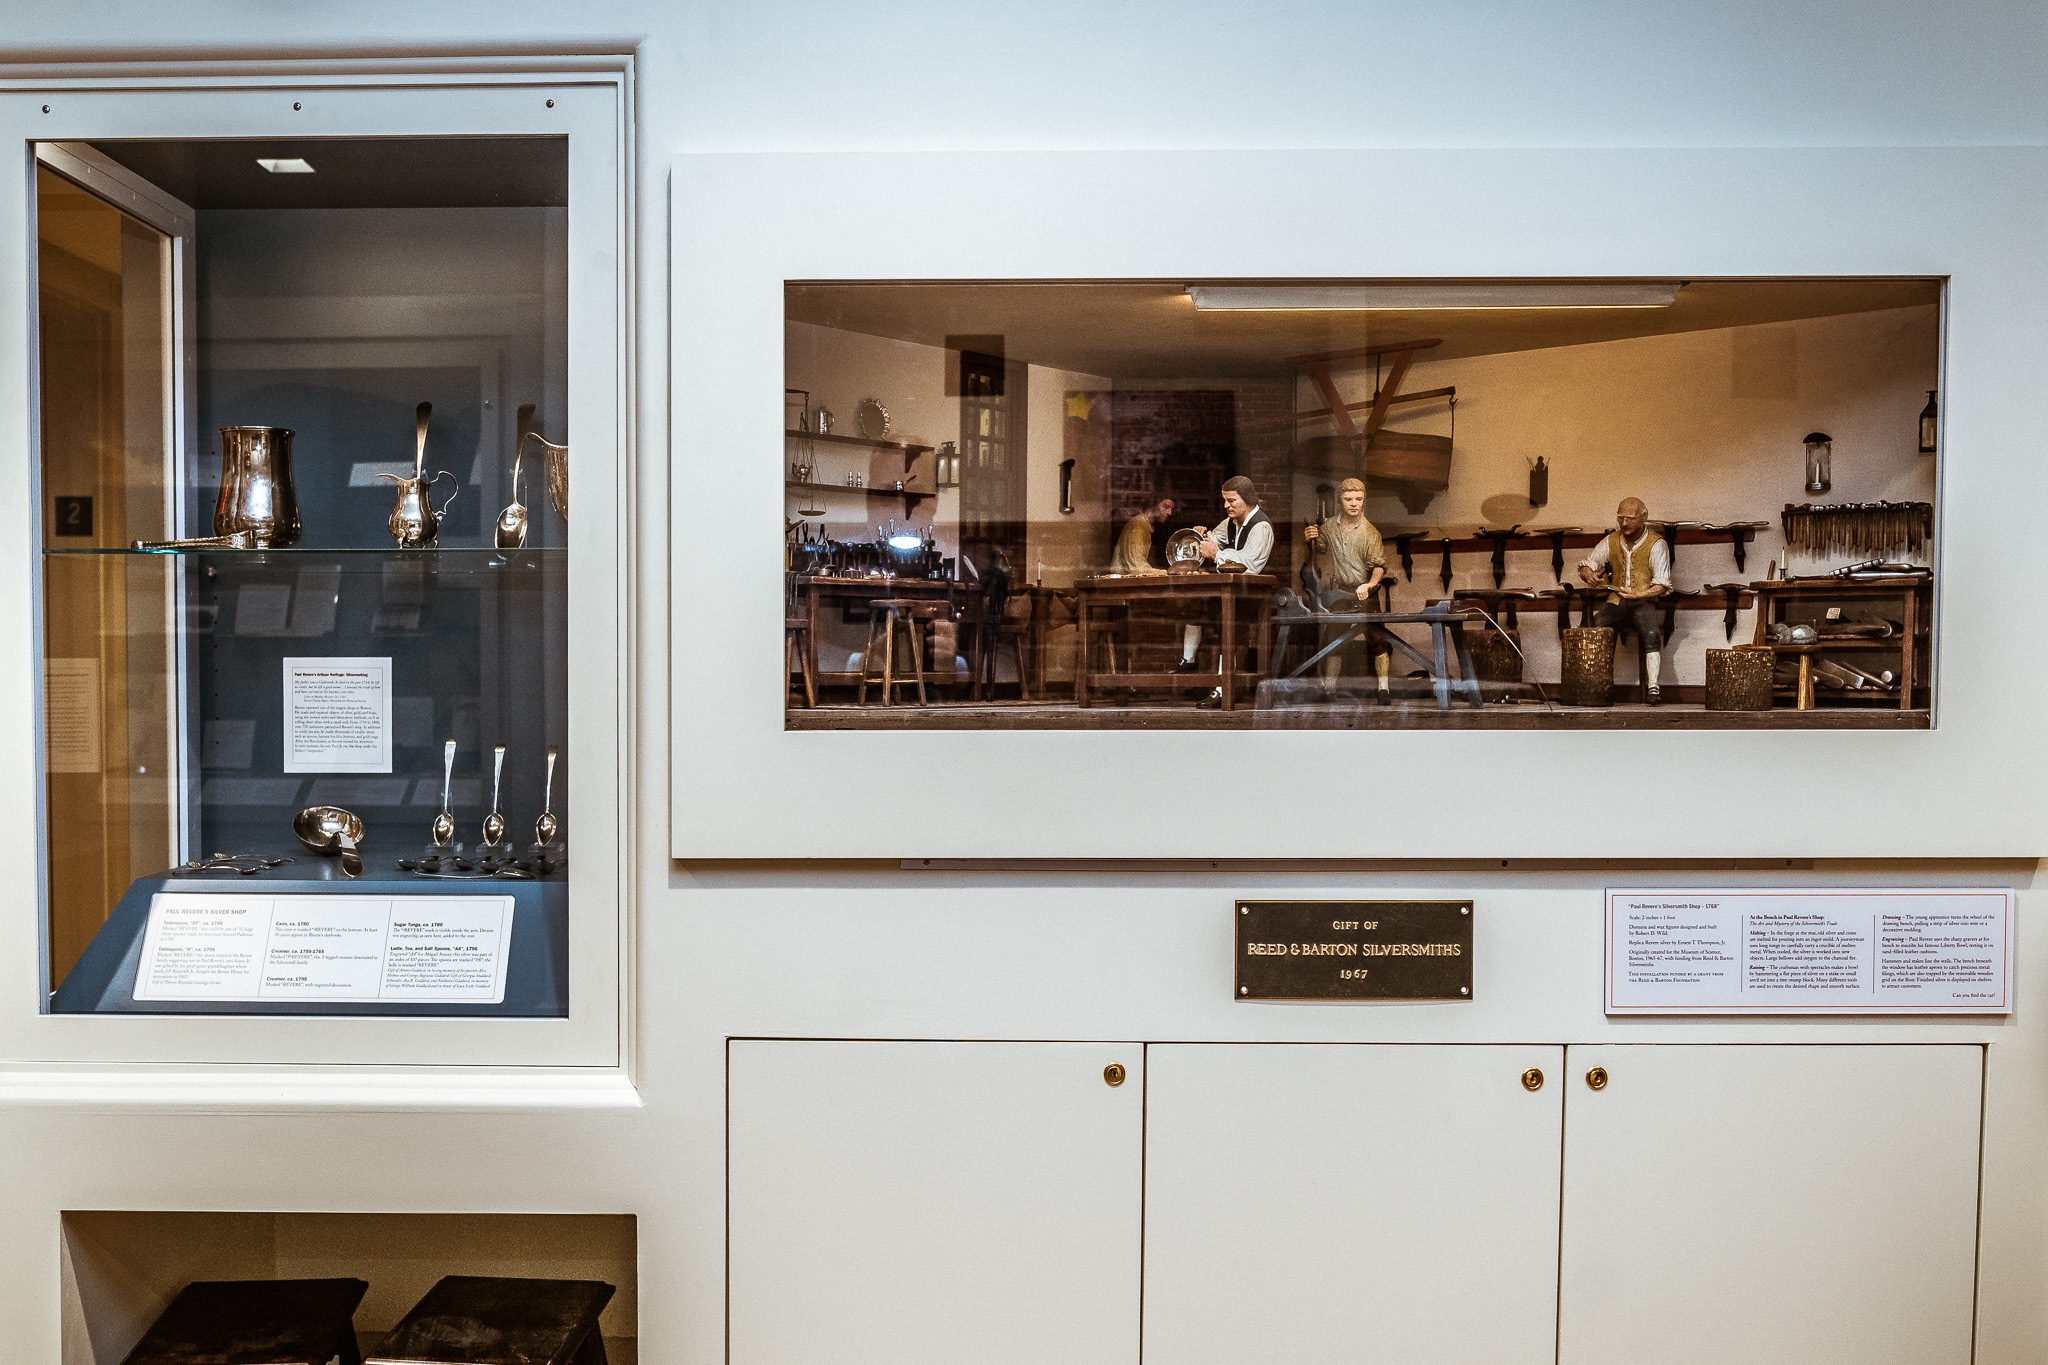 An airtight, display case full of original Paul Revere silver as well as a diorama of Revere's silver shop. This diorama was on display at the Museum of Science in Boston for many years.